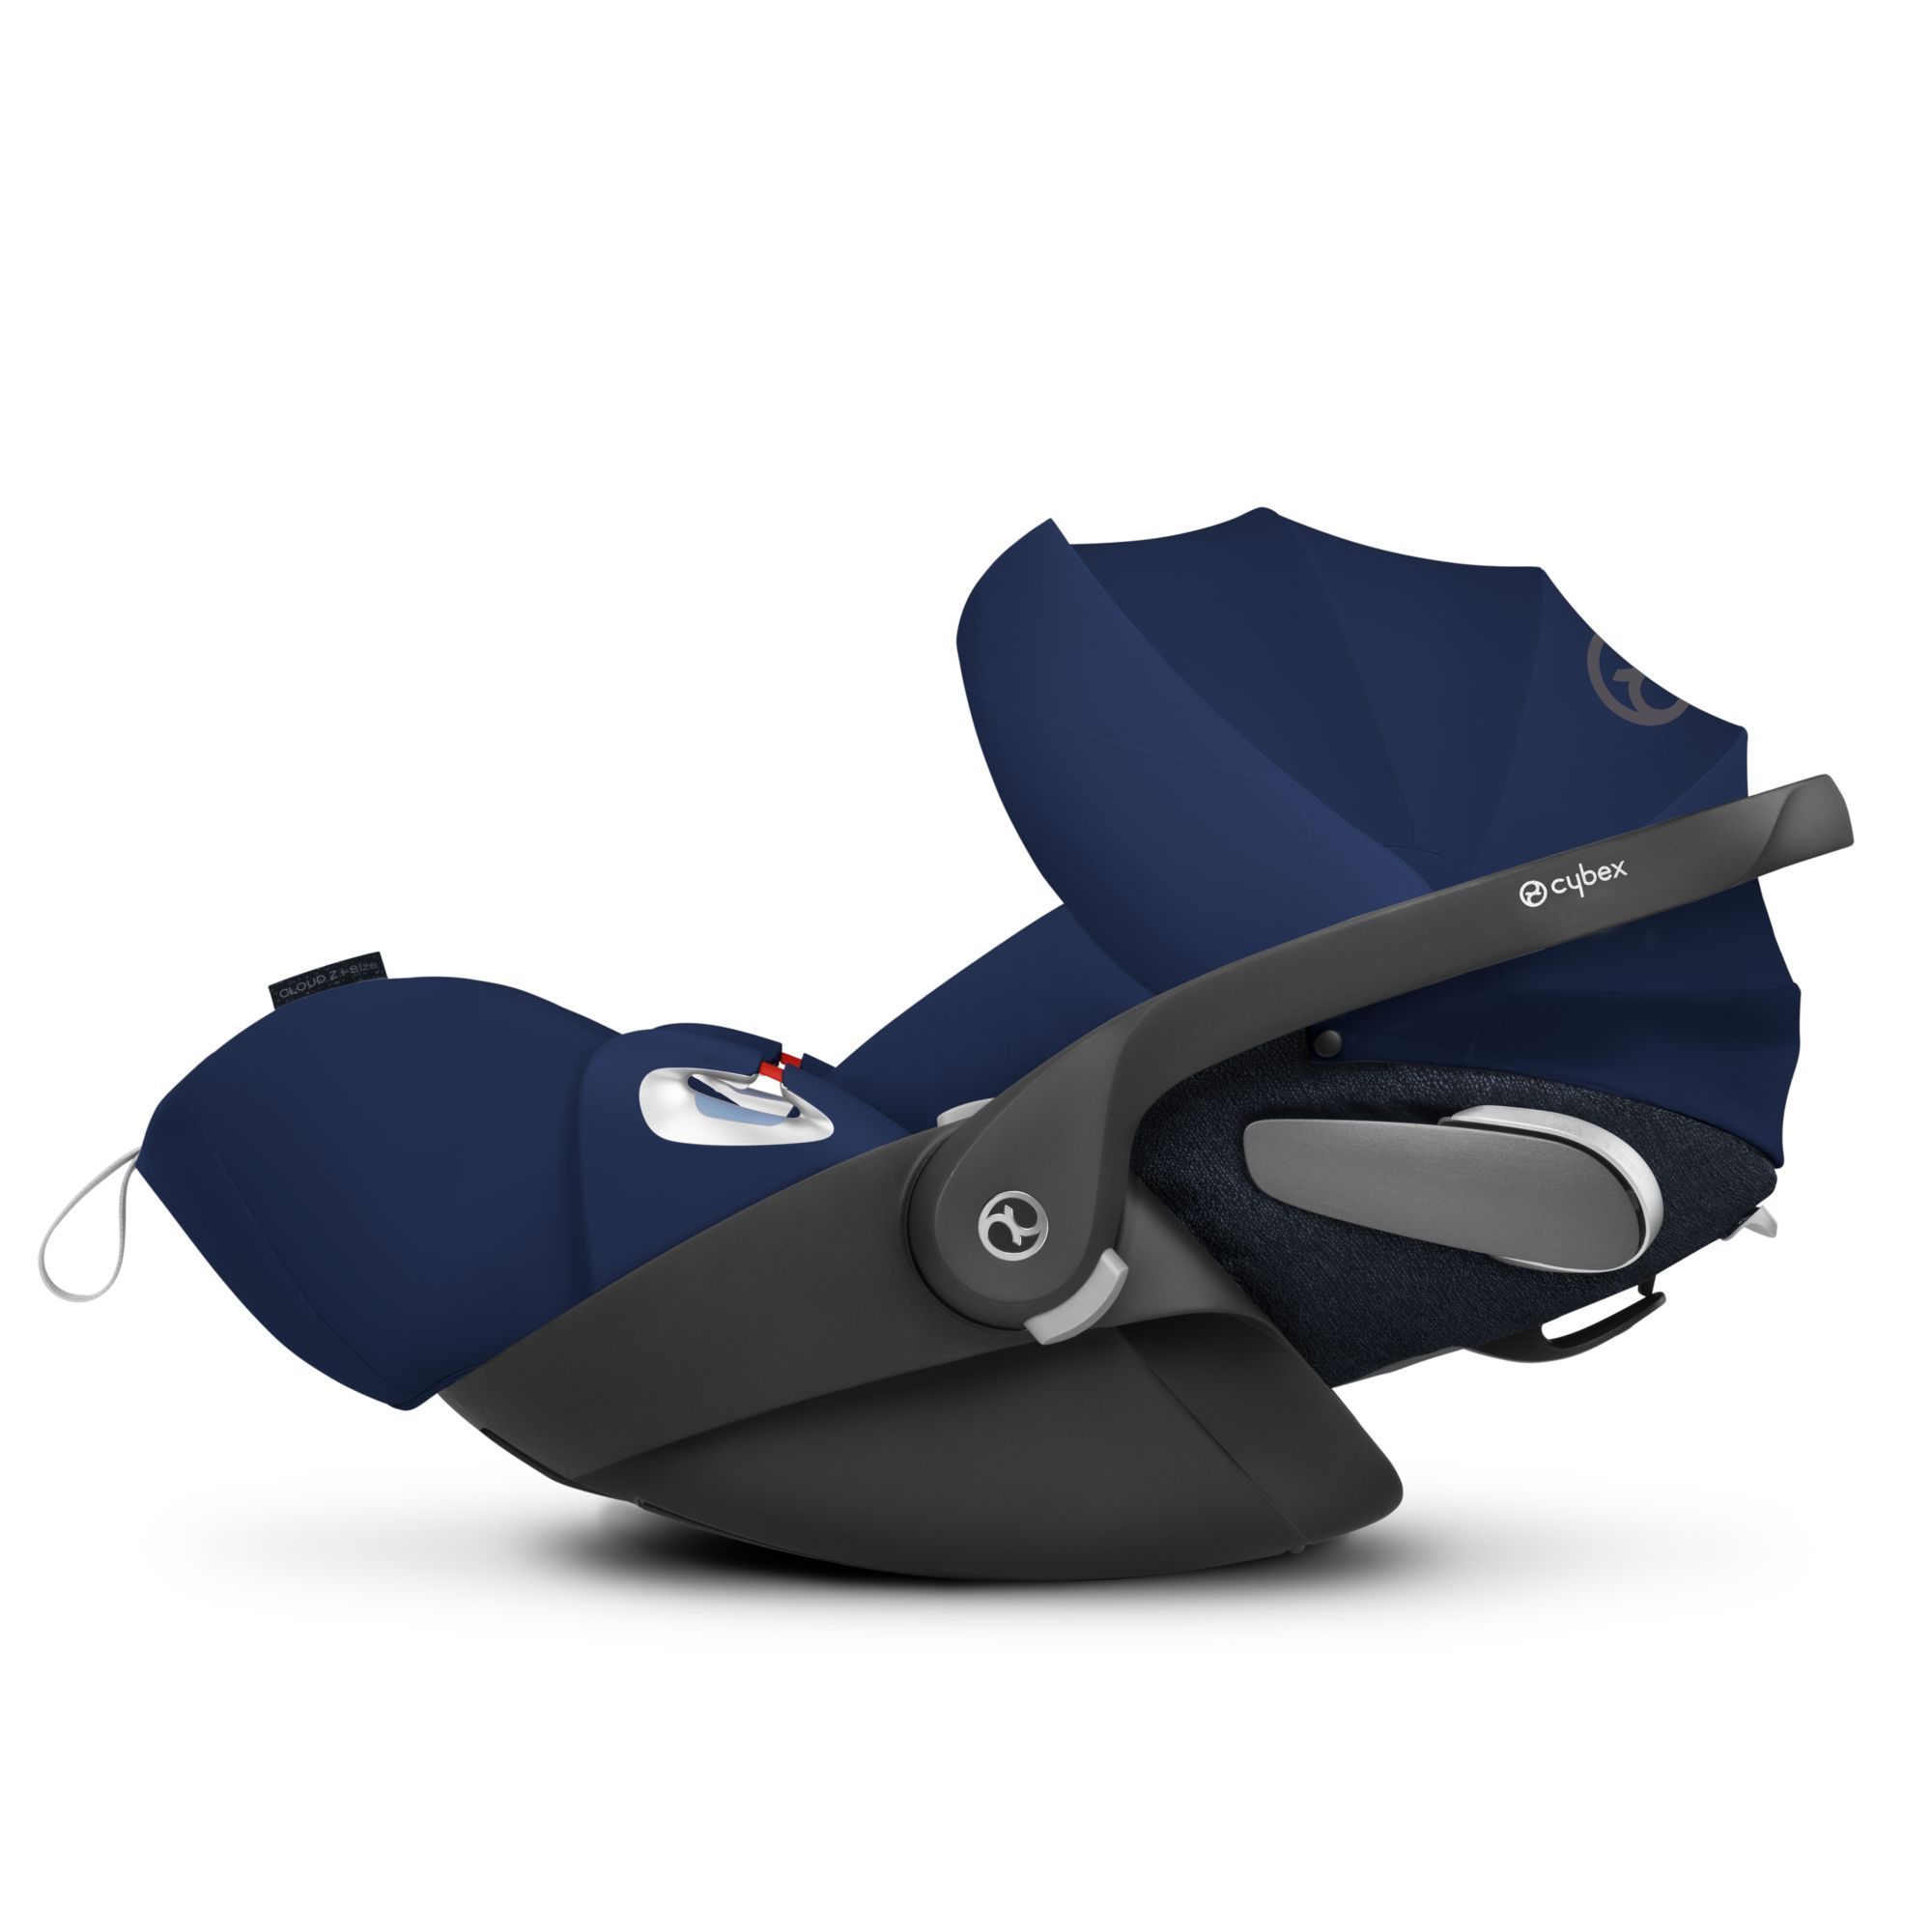 Cybex Cloud Z i-Size Infant Car Seat with SensorSafe (2019 colours) - Pushchair Expert